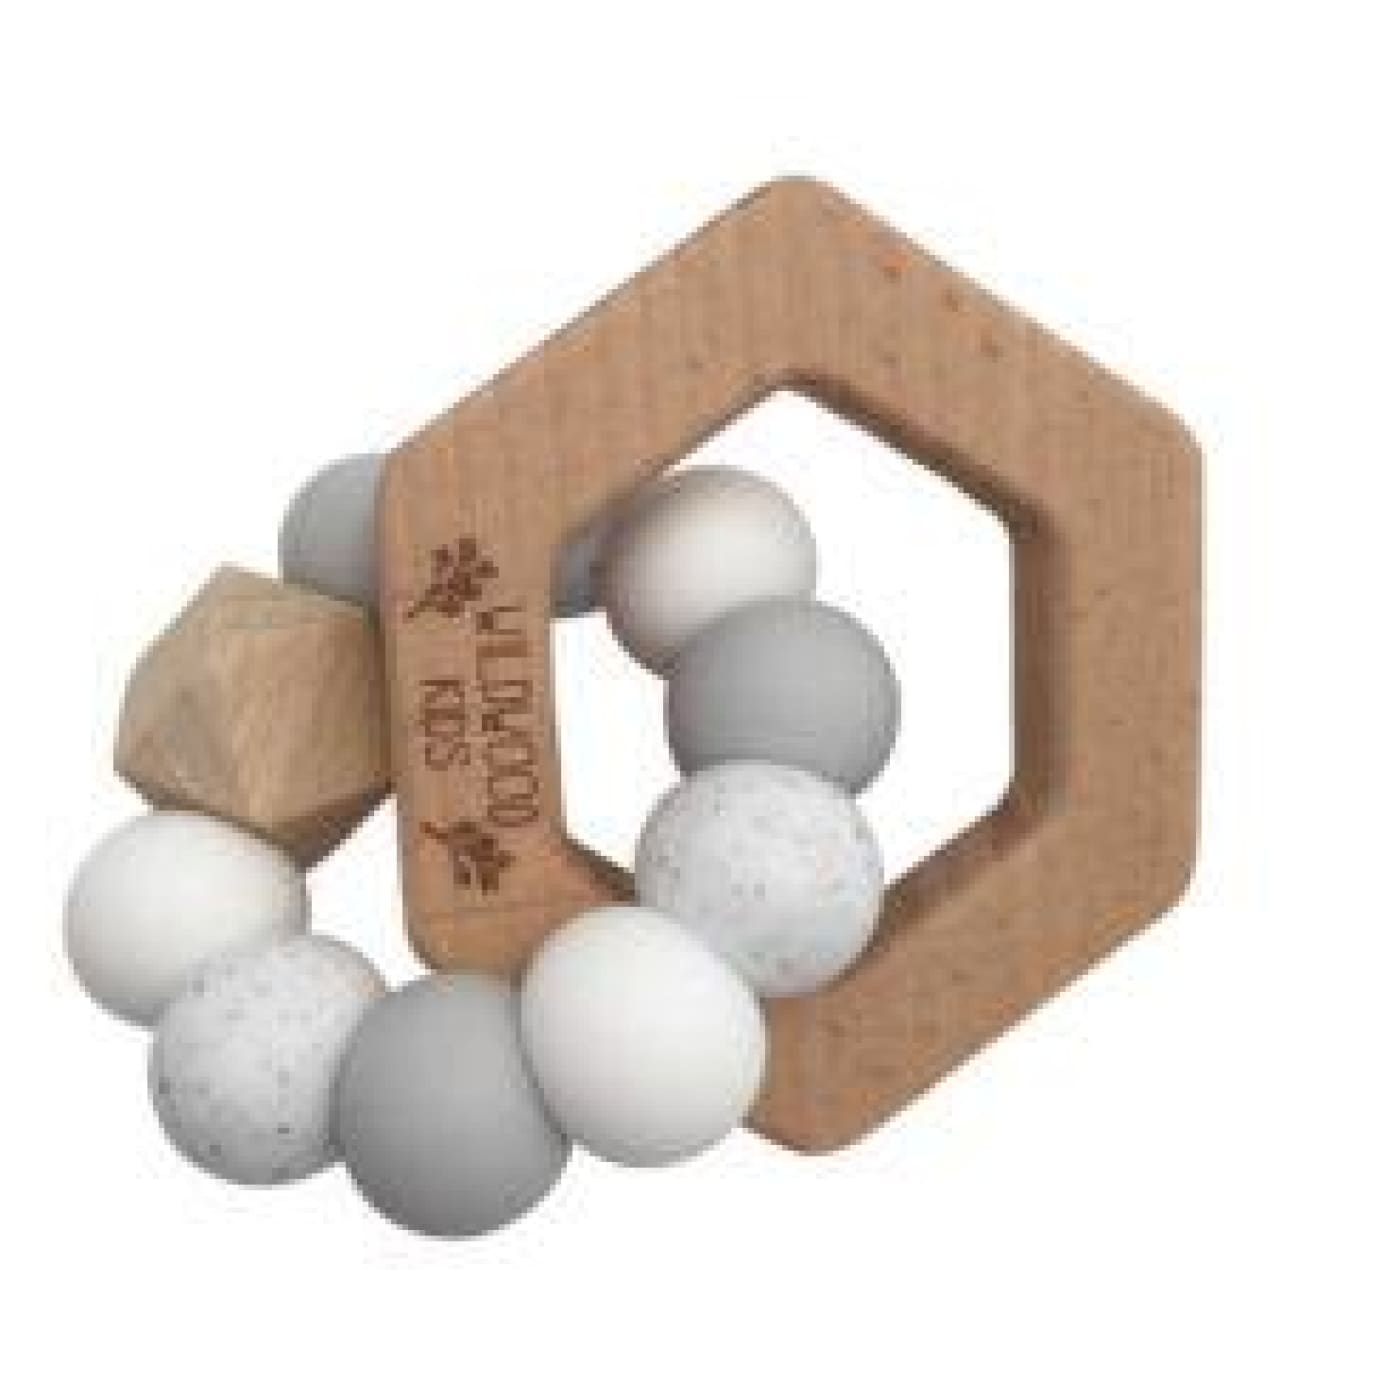 Wildwood Kids Teether - Hexagon Grey Mix - NURSING & FEEDING - TEETHERS/TEETHING JEWELLERY